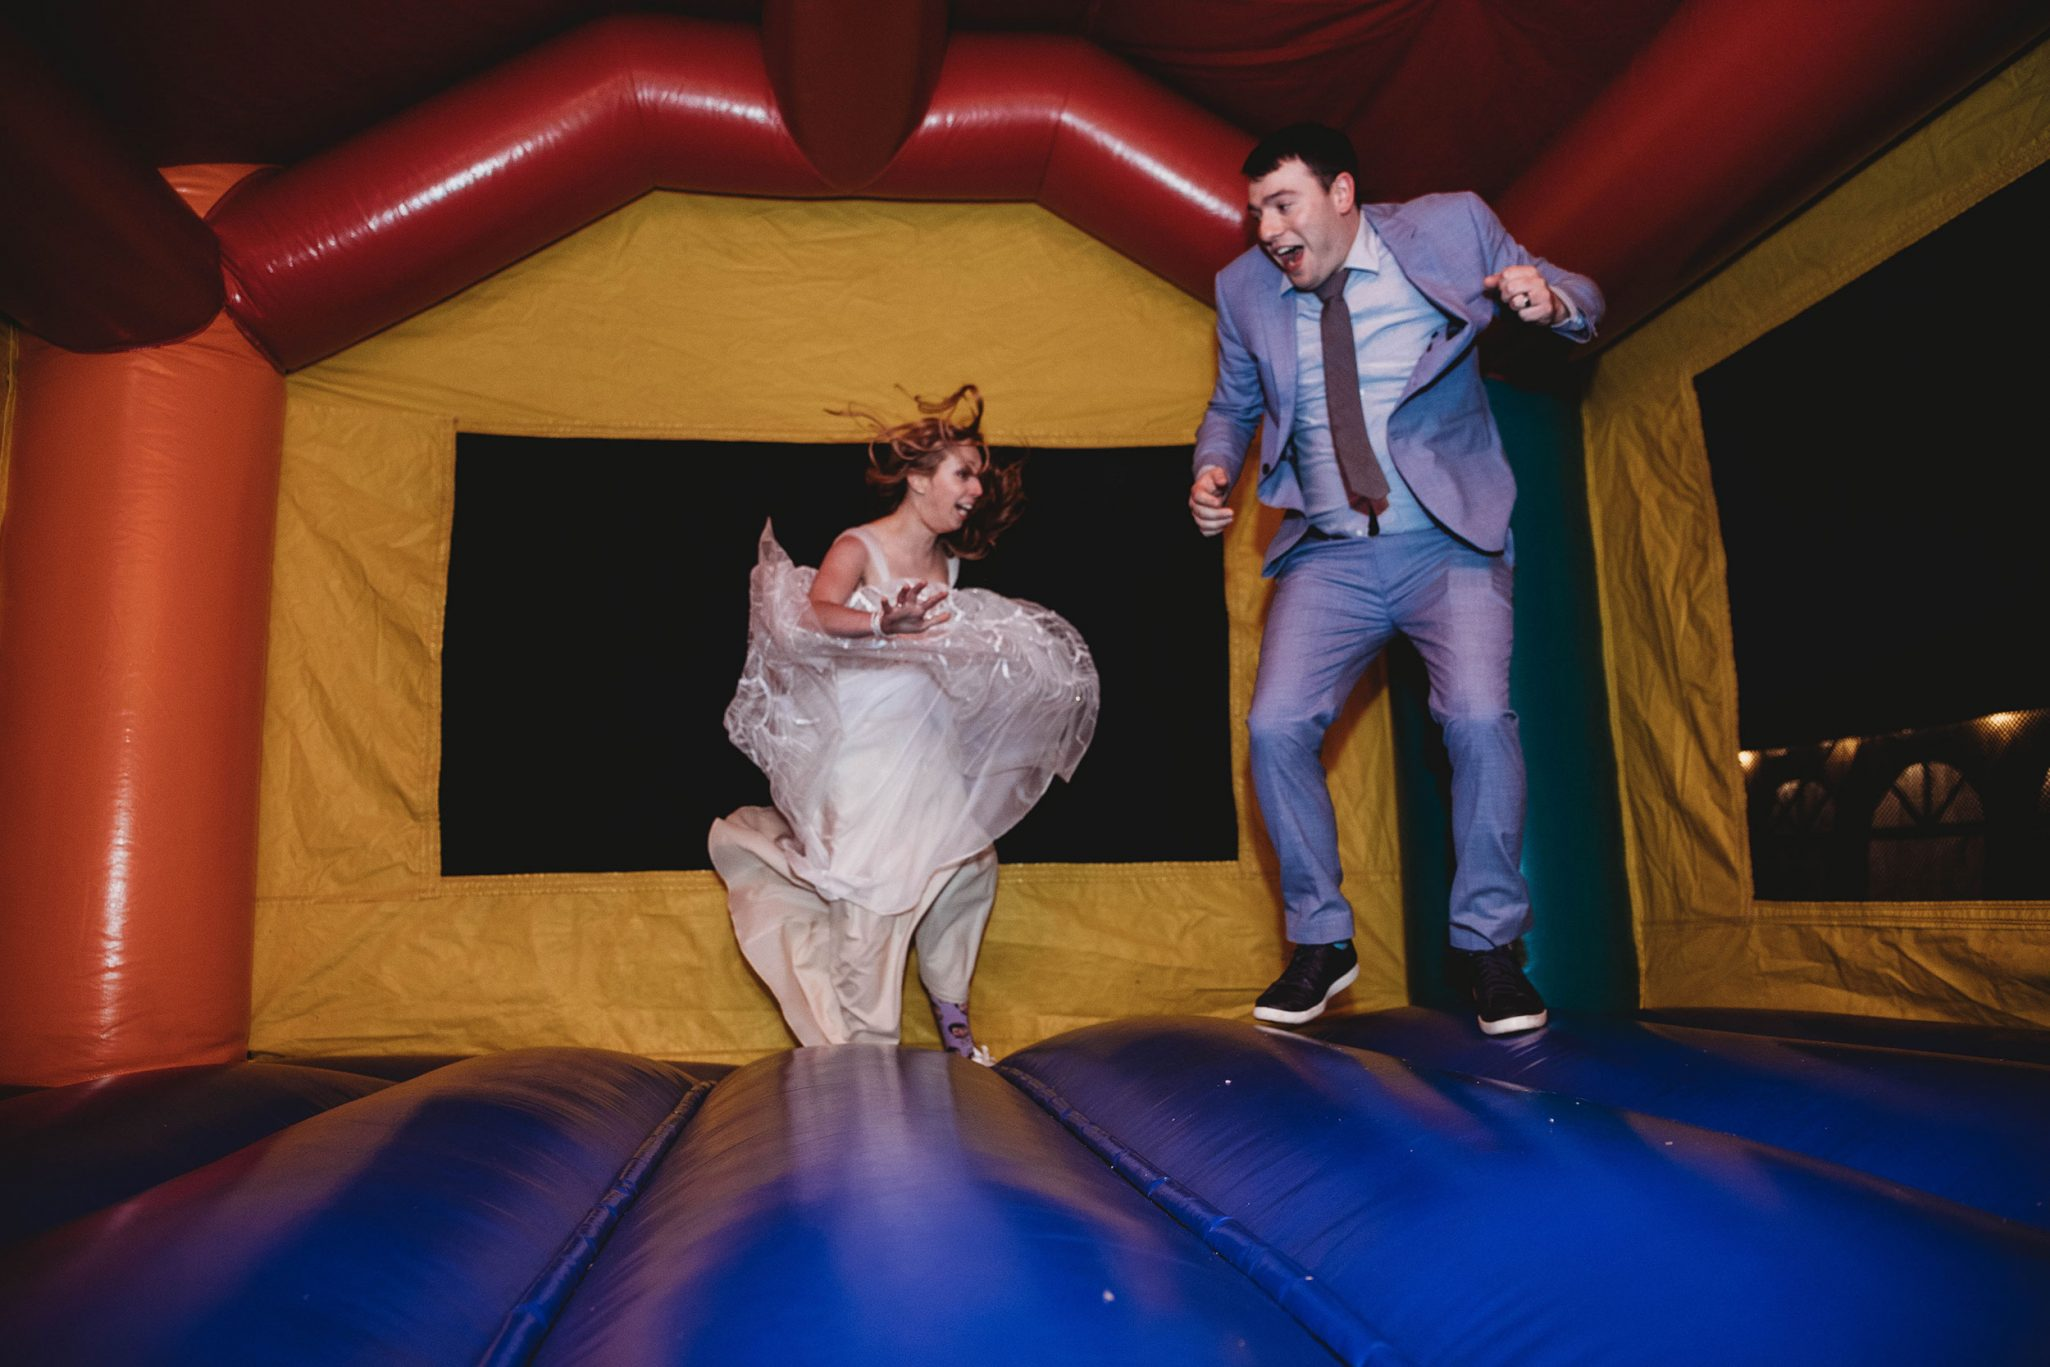 Wedding reception fun with a bounce house